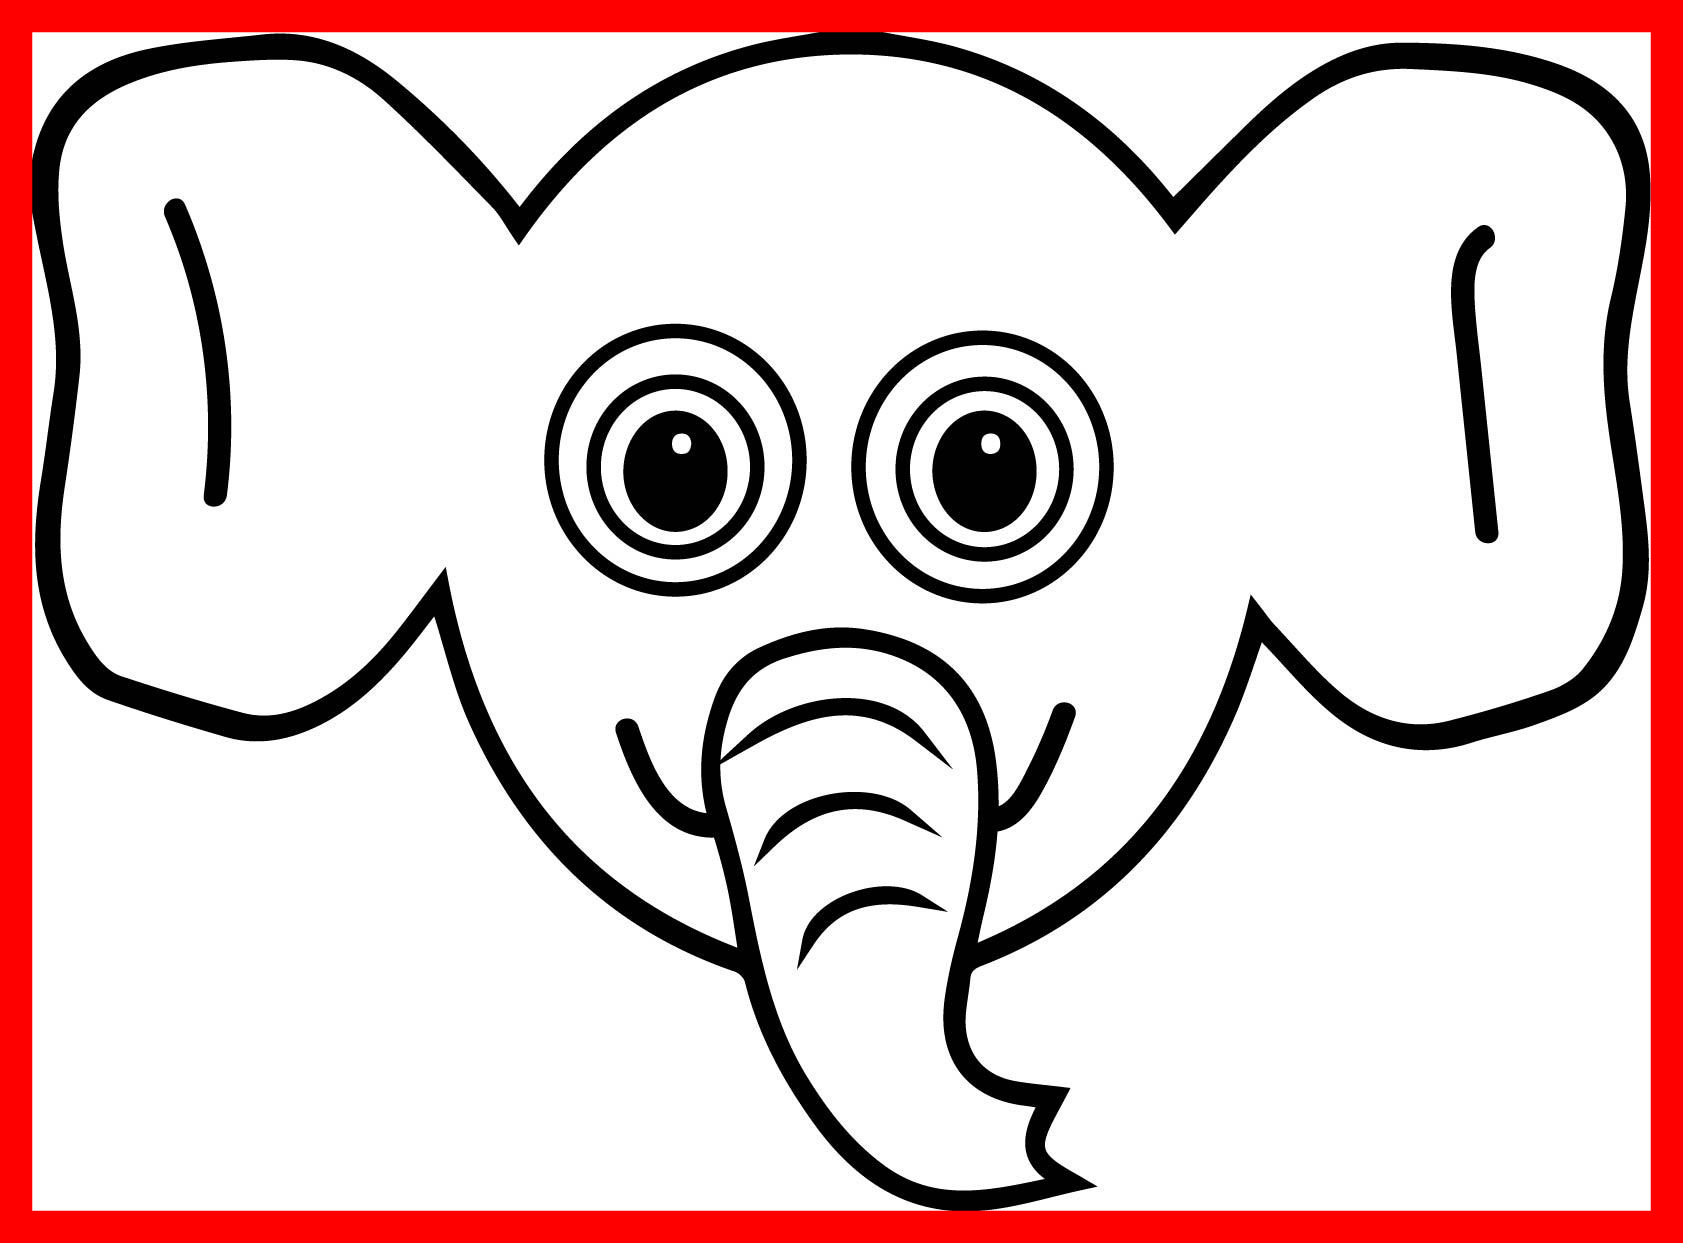 1683x1243 Unbelievable Coloring Pages Elephant Sheet Pic For Concept